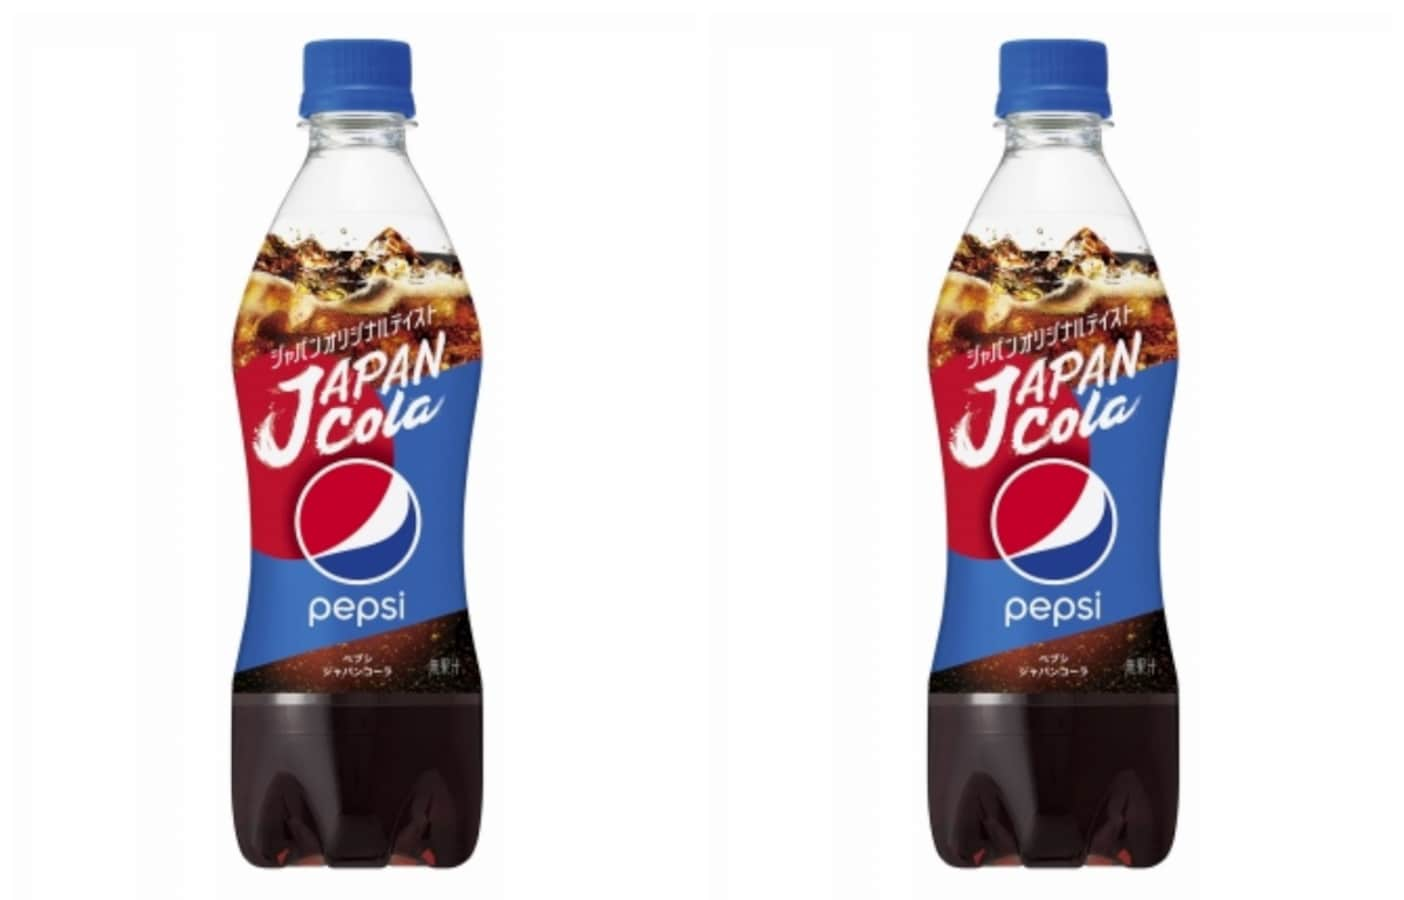 bb99d2f6 Pepsi's Japan Cola Debuts New Exclusive Flavor | All About Japan